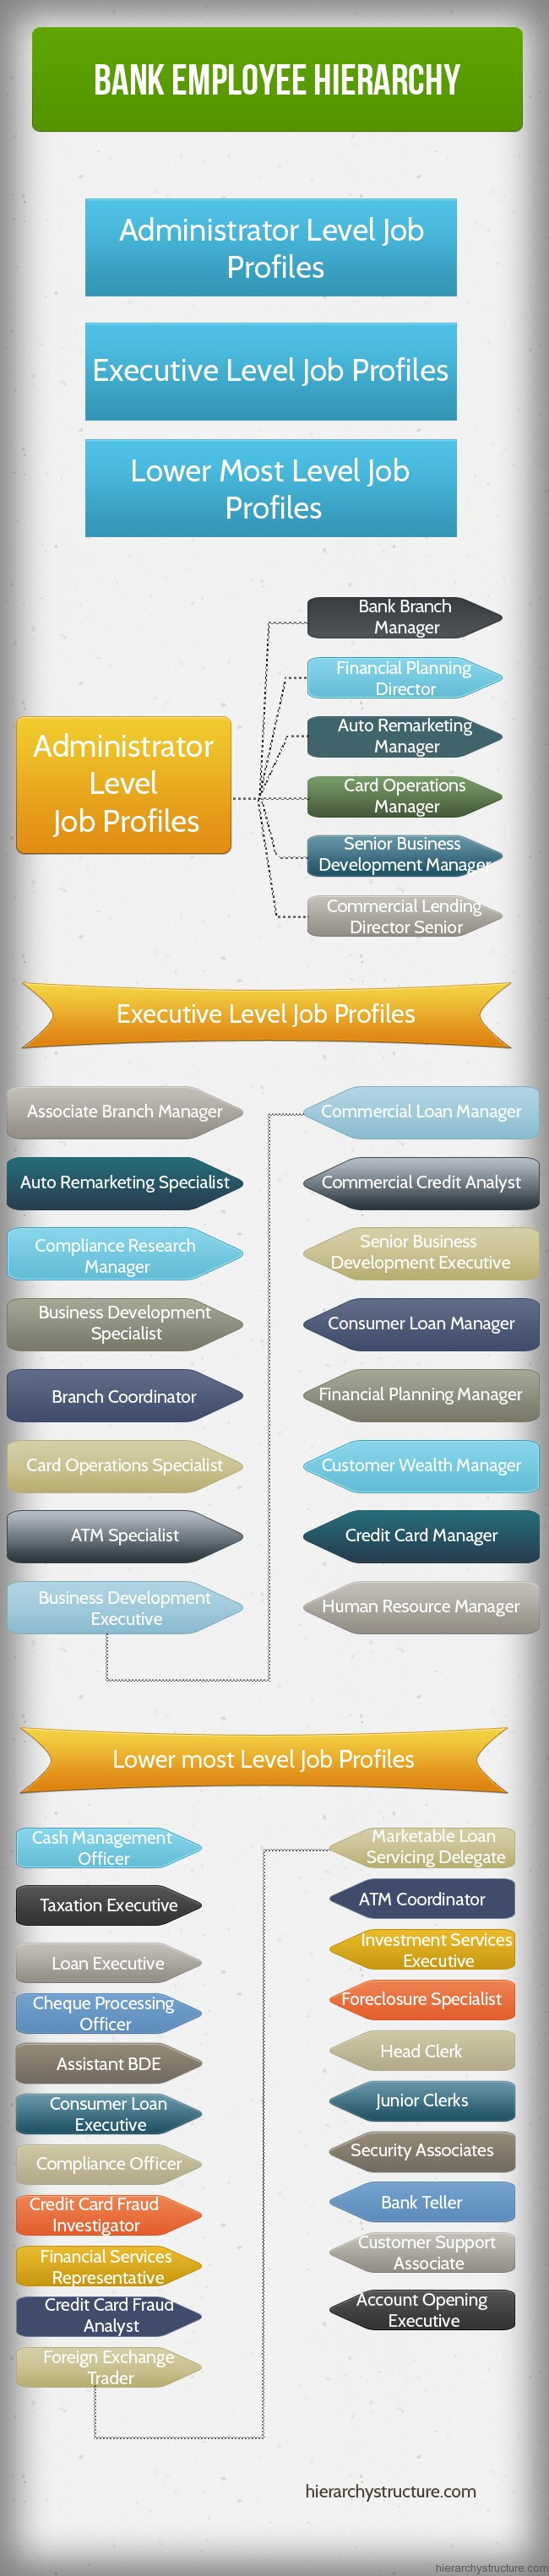 Bank Employee Hierarchy